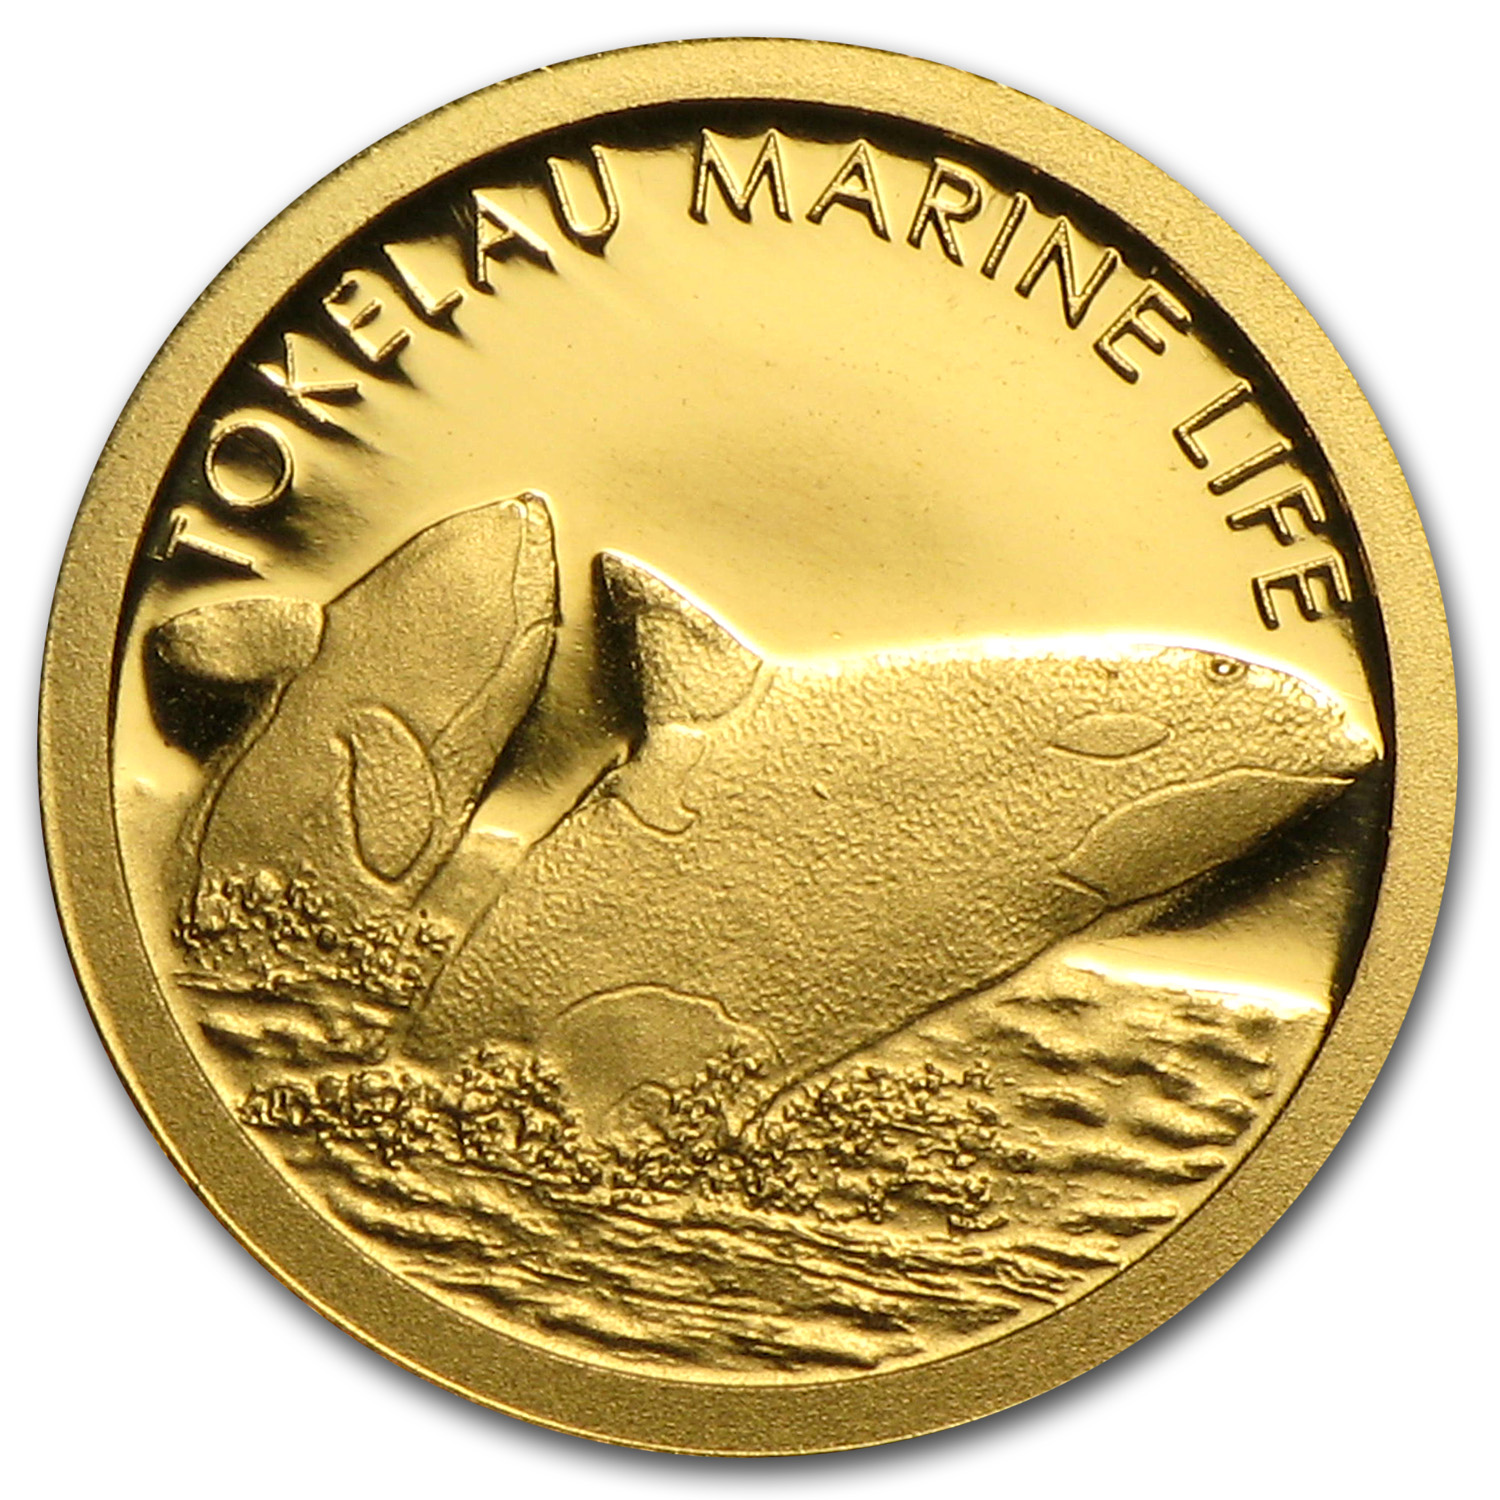 2013 Tokelau 1/2 gm Gold $5 Orca Whale Coin